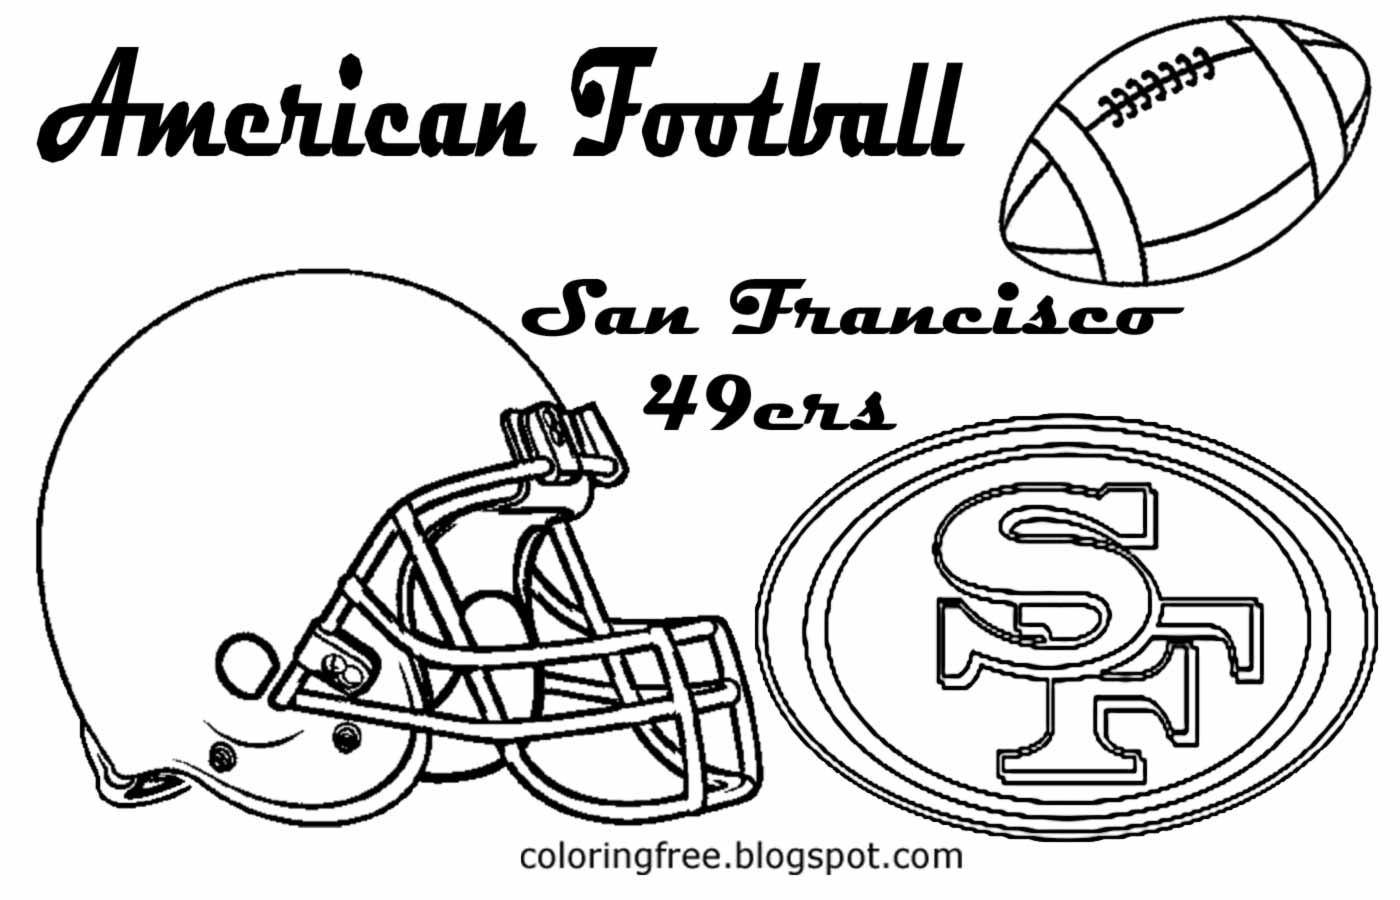 Uncategorized 49ers Coloring Page 100 ideas 49ers coloring pages on gerardduchemann com free tennessee titans logo with 49ers